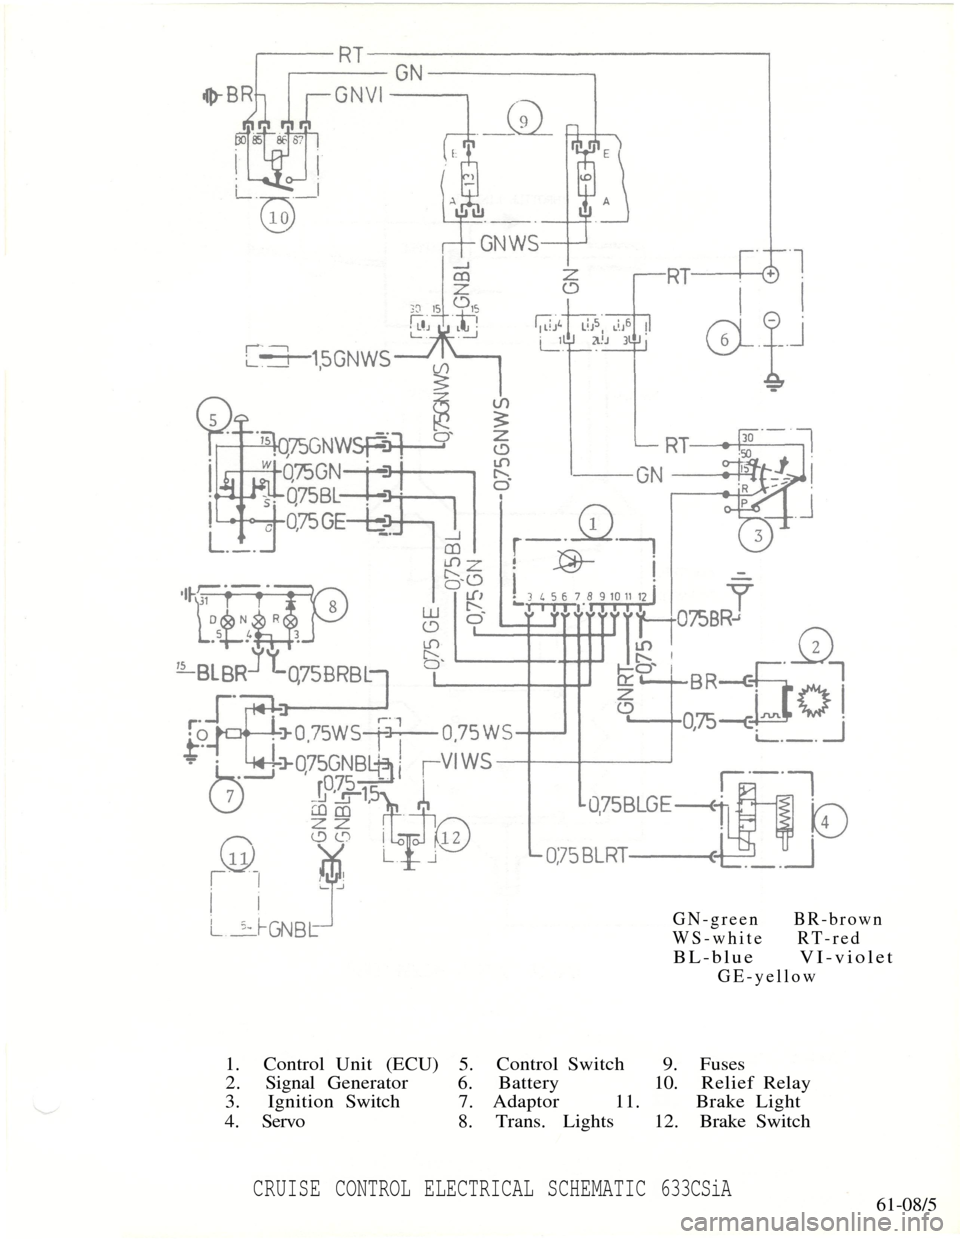 Bmw 5 Series 1987 E28 Cruise Control With Electric Acutator Porsche Diagram